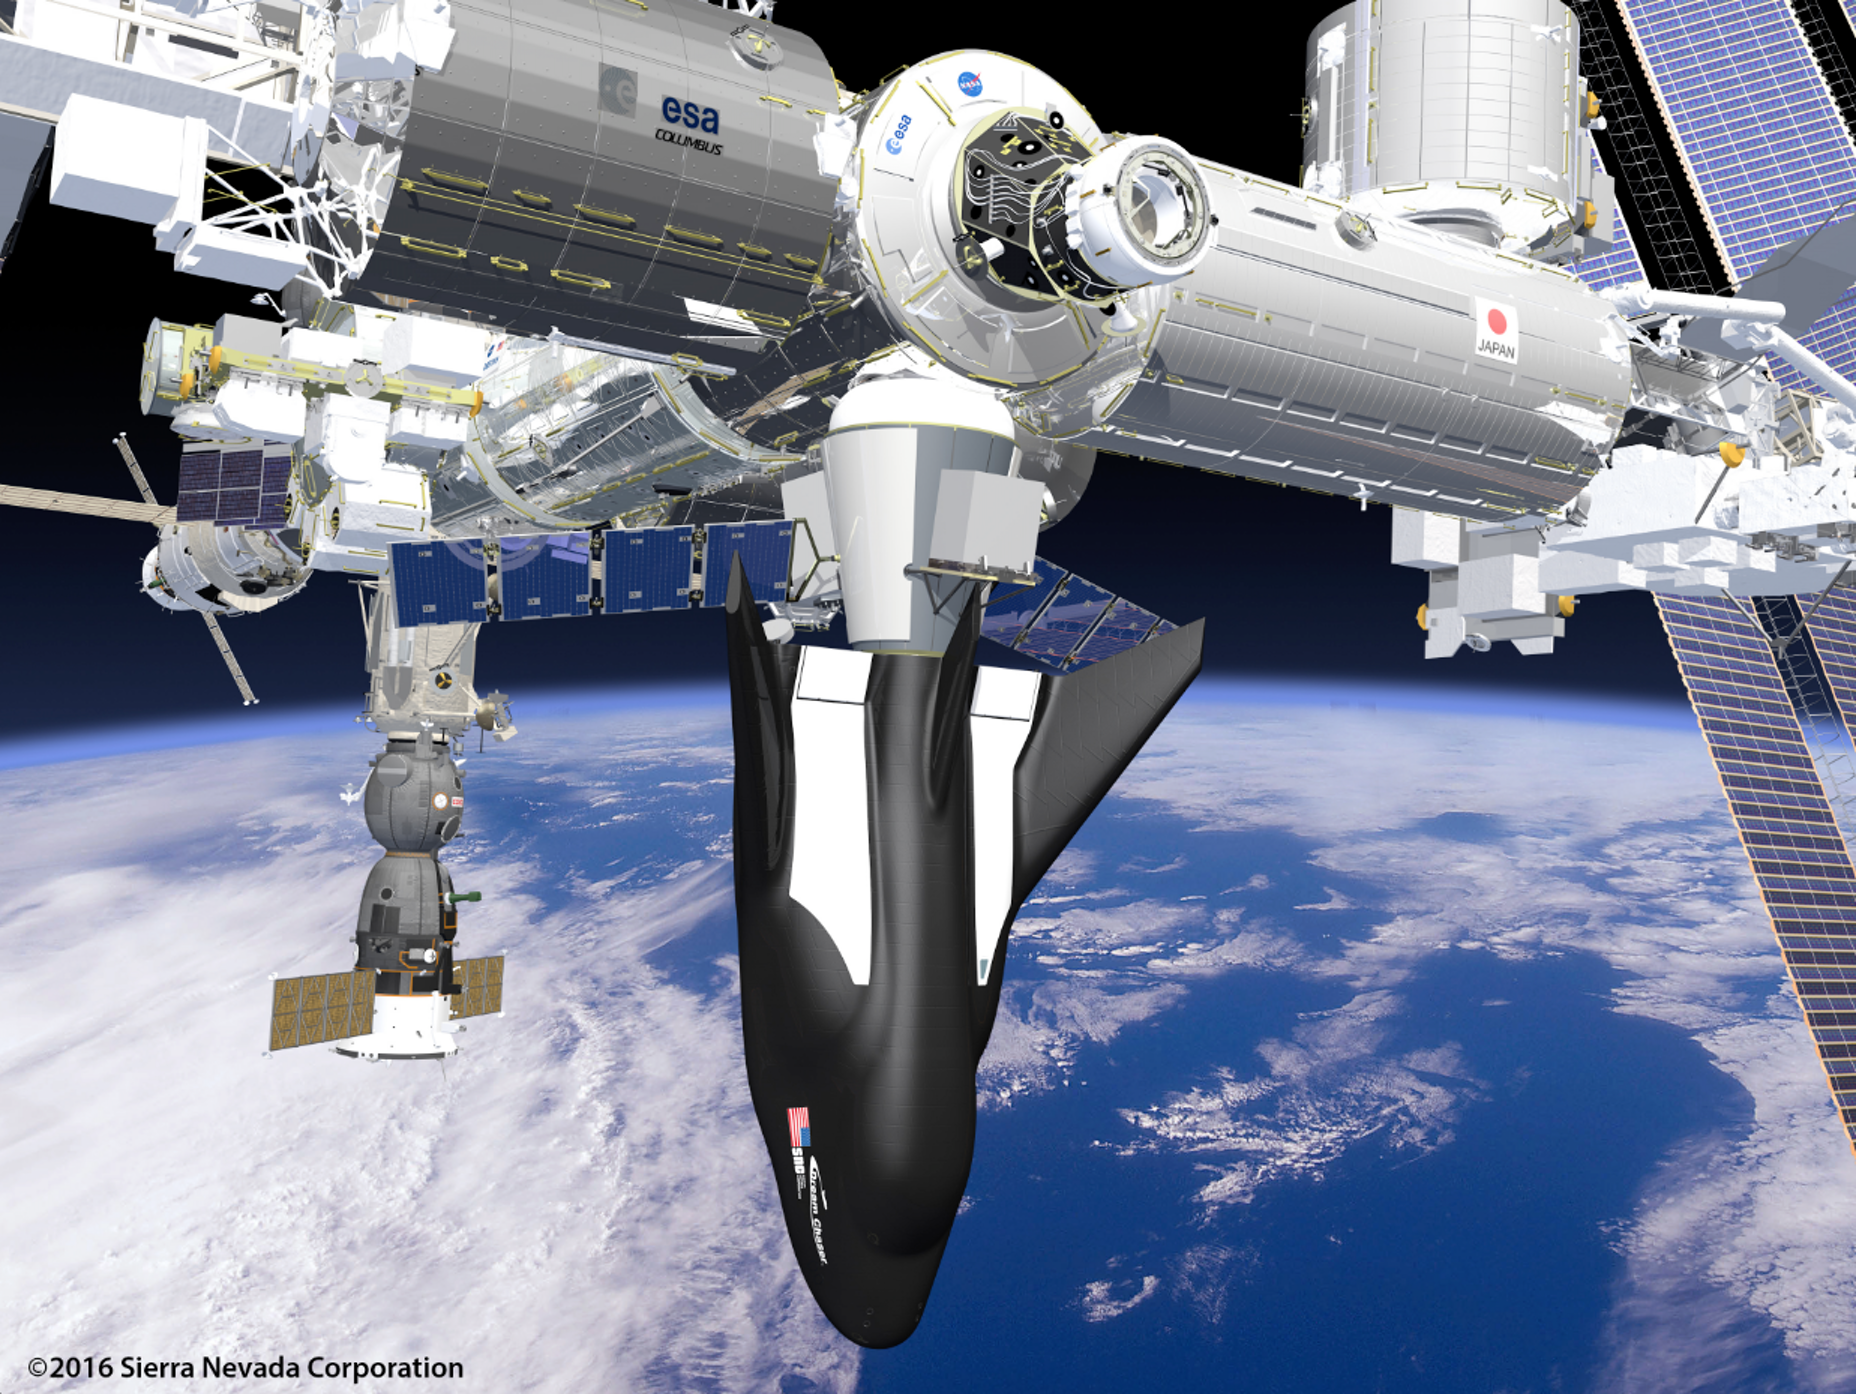 An artist's rendering of SNC's Dream Chaser Spacecraft and Cargo Module Attached to the ISS.